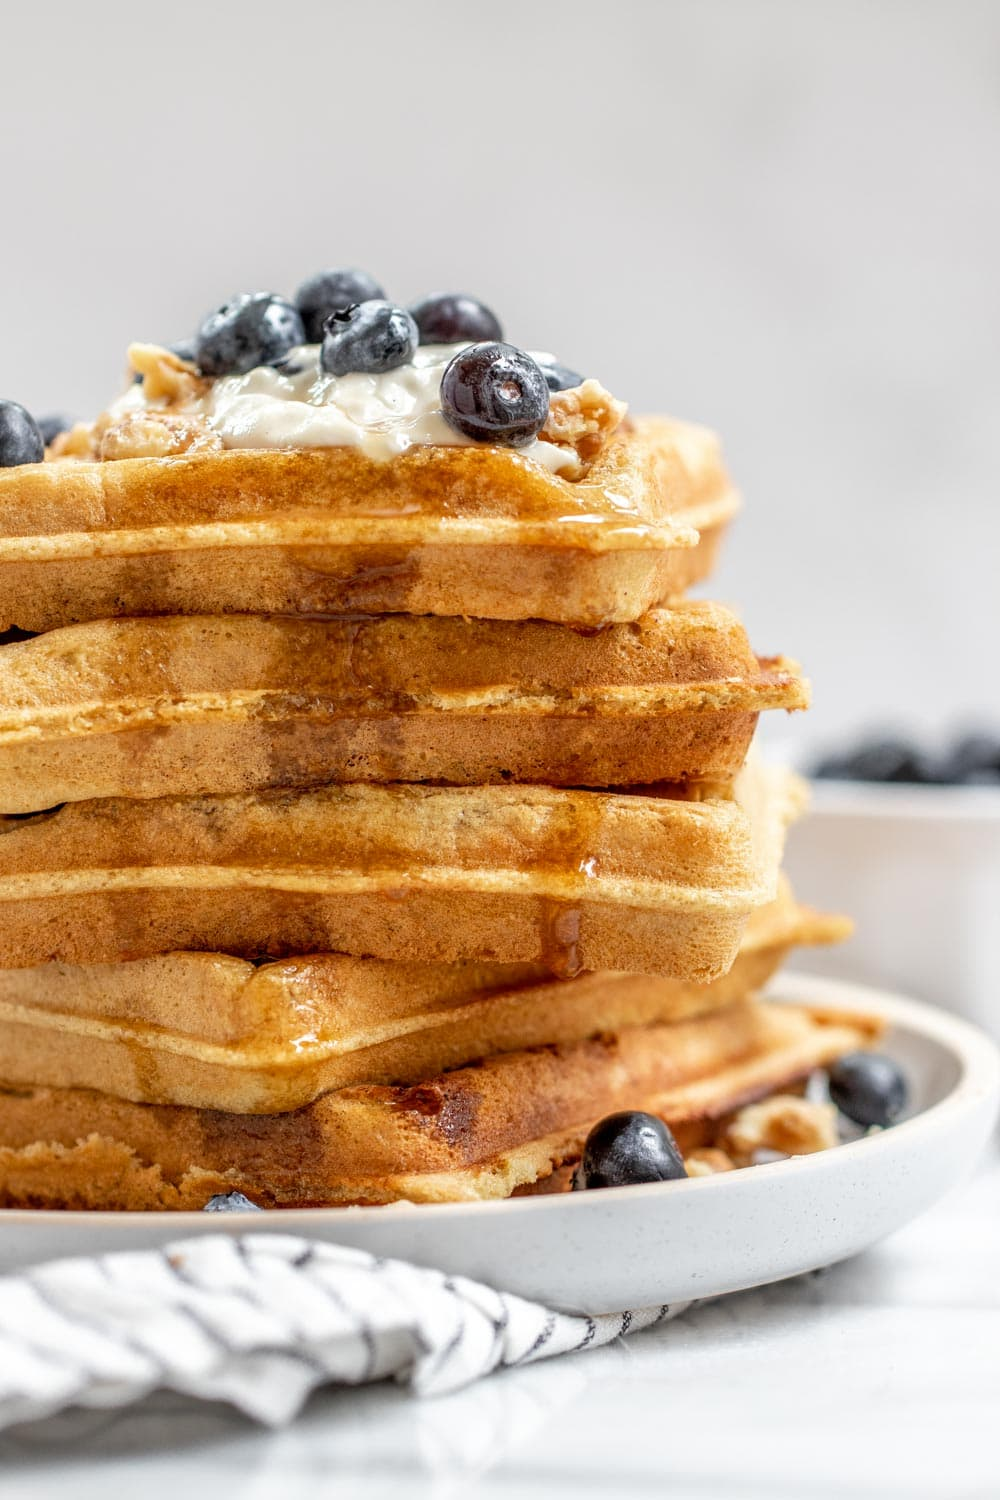 Tall stack of vegan almond flour waffles with berries on top.